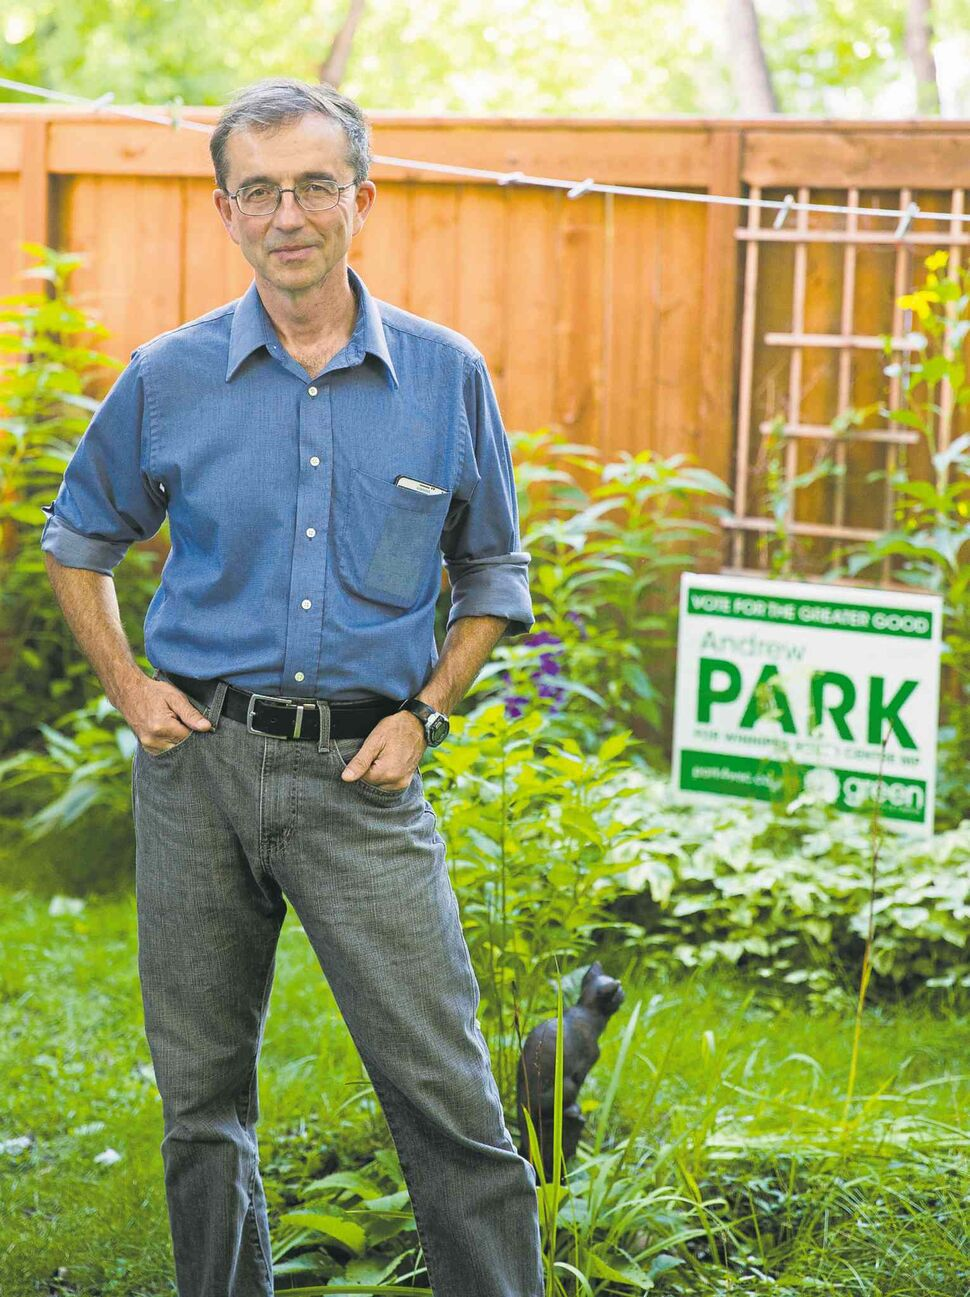 Andrew Park, the Green party candidate for Winnipeg South Centre (Winnipeg Free Press)